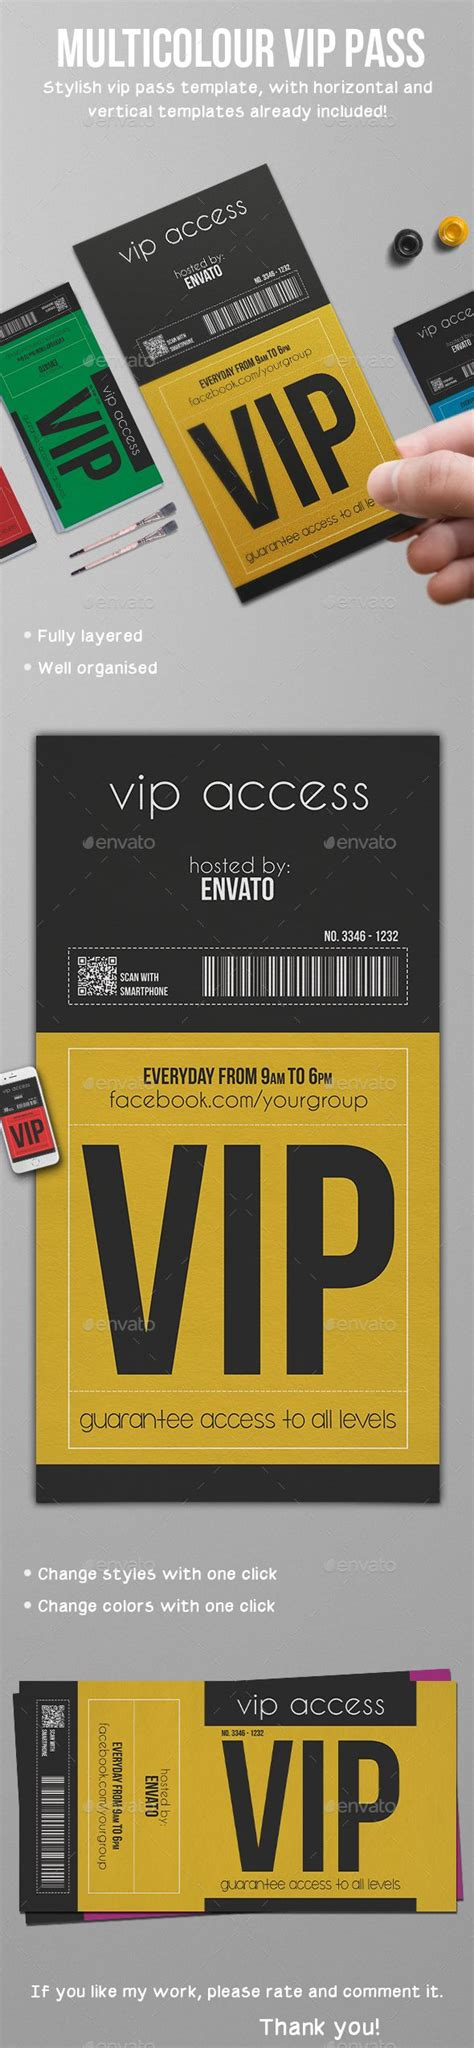 25 best ideas about vip pass on pinterest dance party